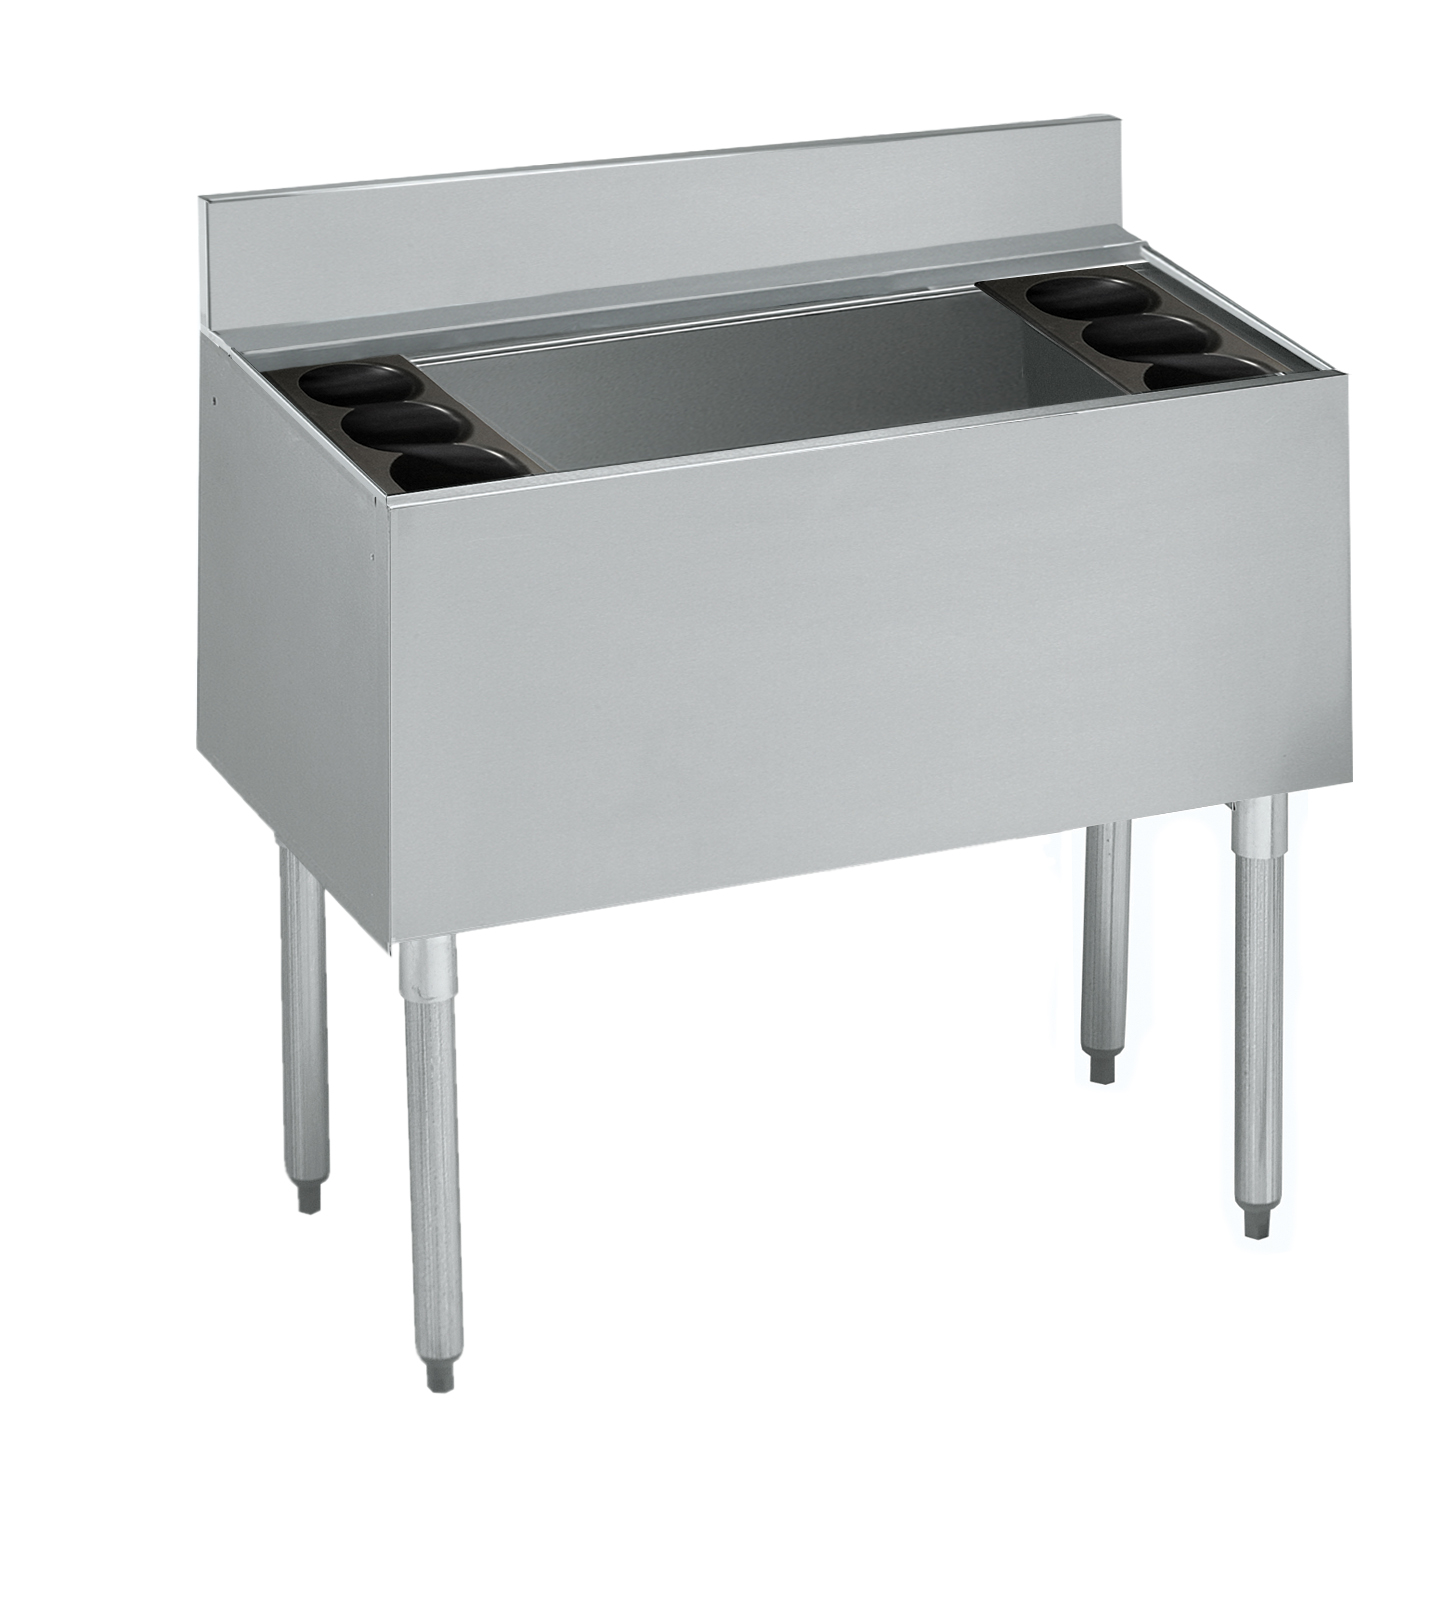 Krowne Metal 21-36 underbar ice bin/cocktail unit